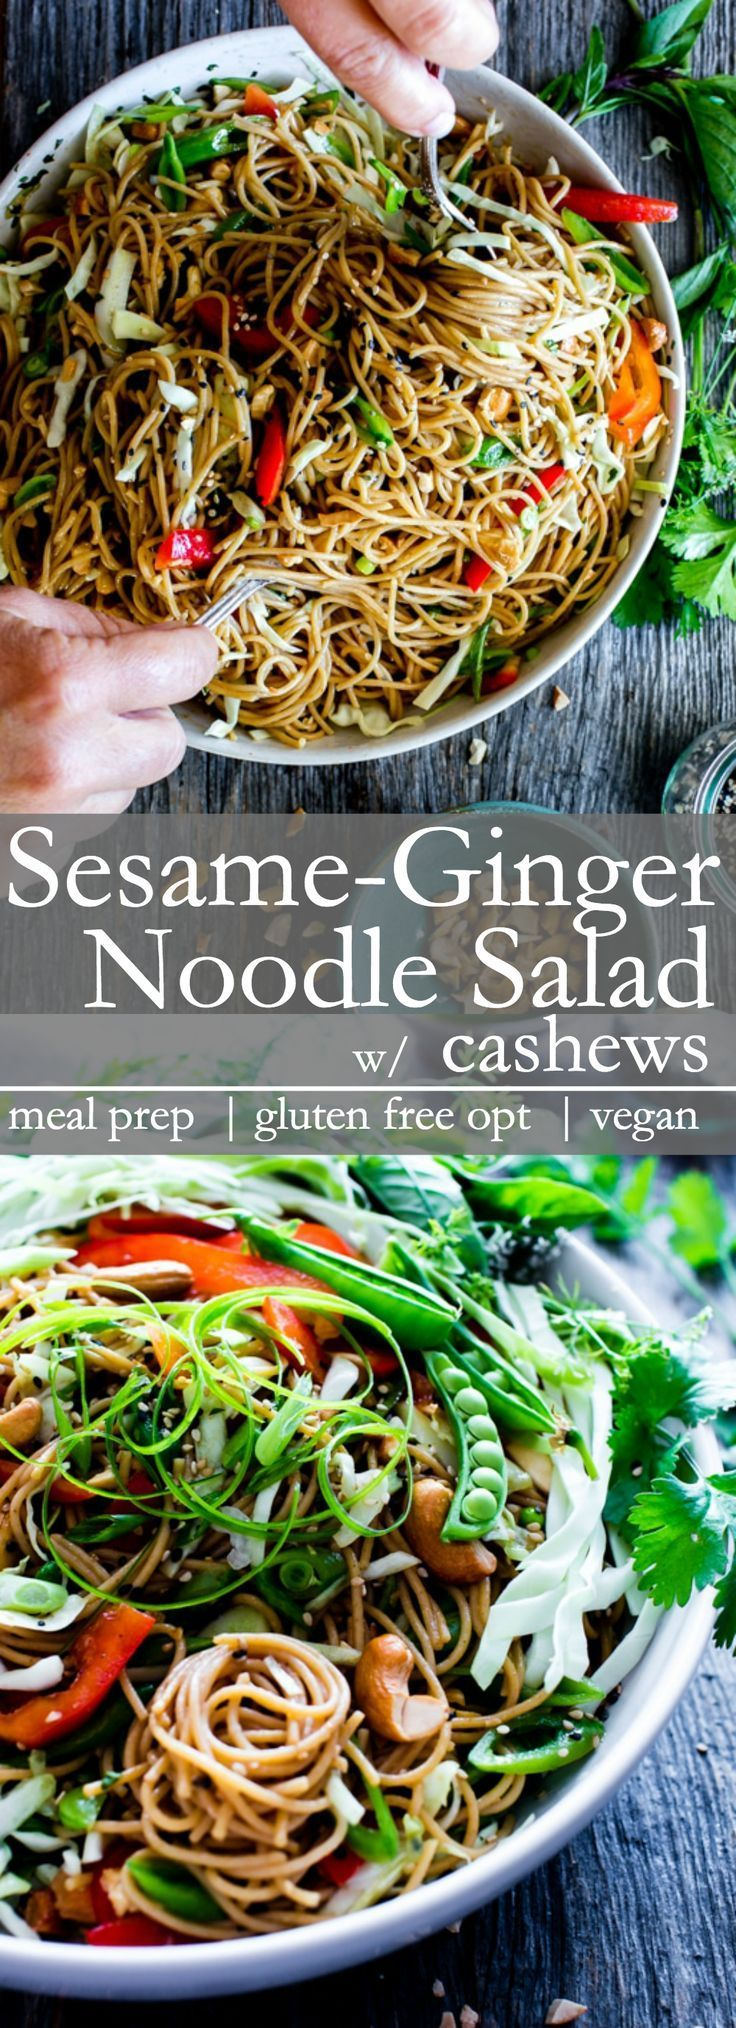 A flavor packed dressing with crunchy veggies, Sesame-Ginger Noodle Salad with Cashews comes together with ease. Make once, eat all week!